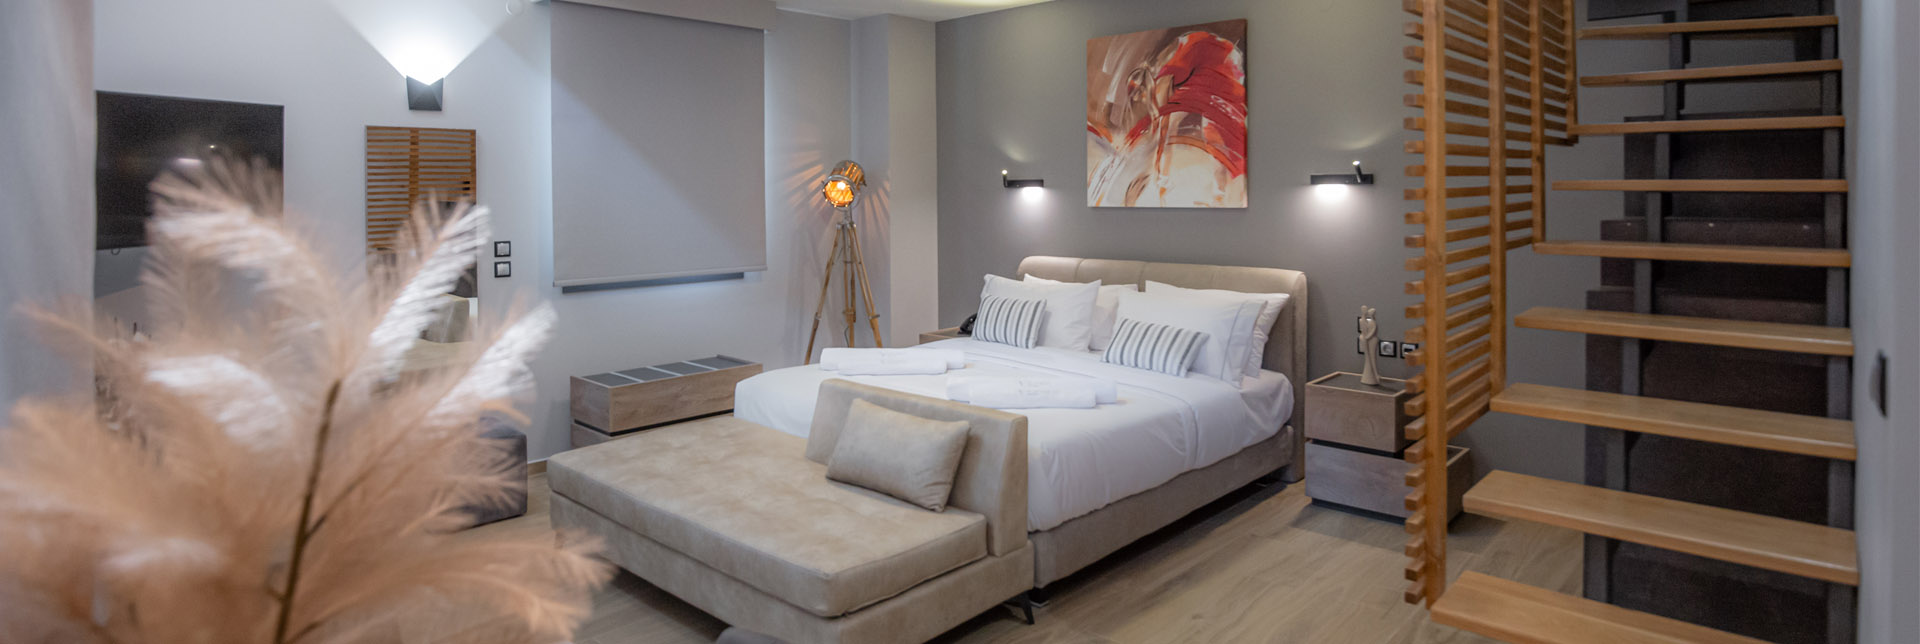 The Victoria Lefkada Two Bedroom Lofts Gallery Slider